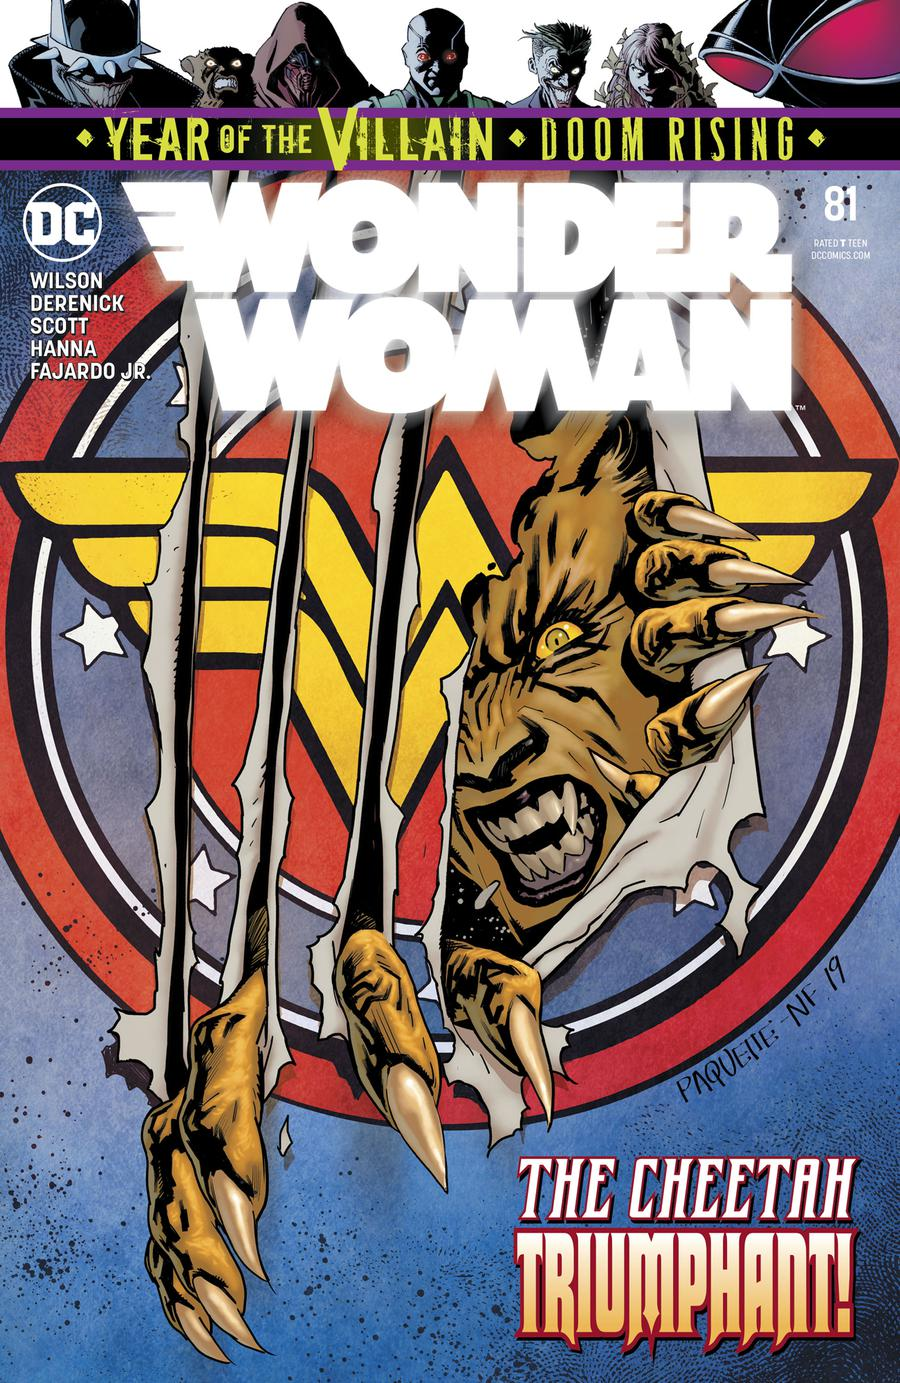 Wonder Woman Vol 5 #81 Cover A Regular Yanick Paquette Cover (Year Of The Villain Doom Rising Tie-In)